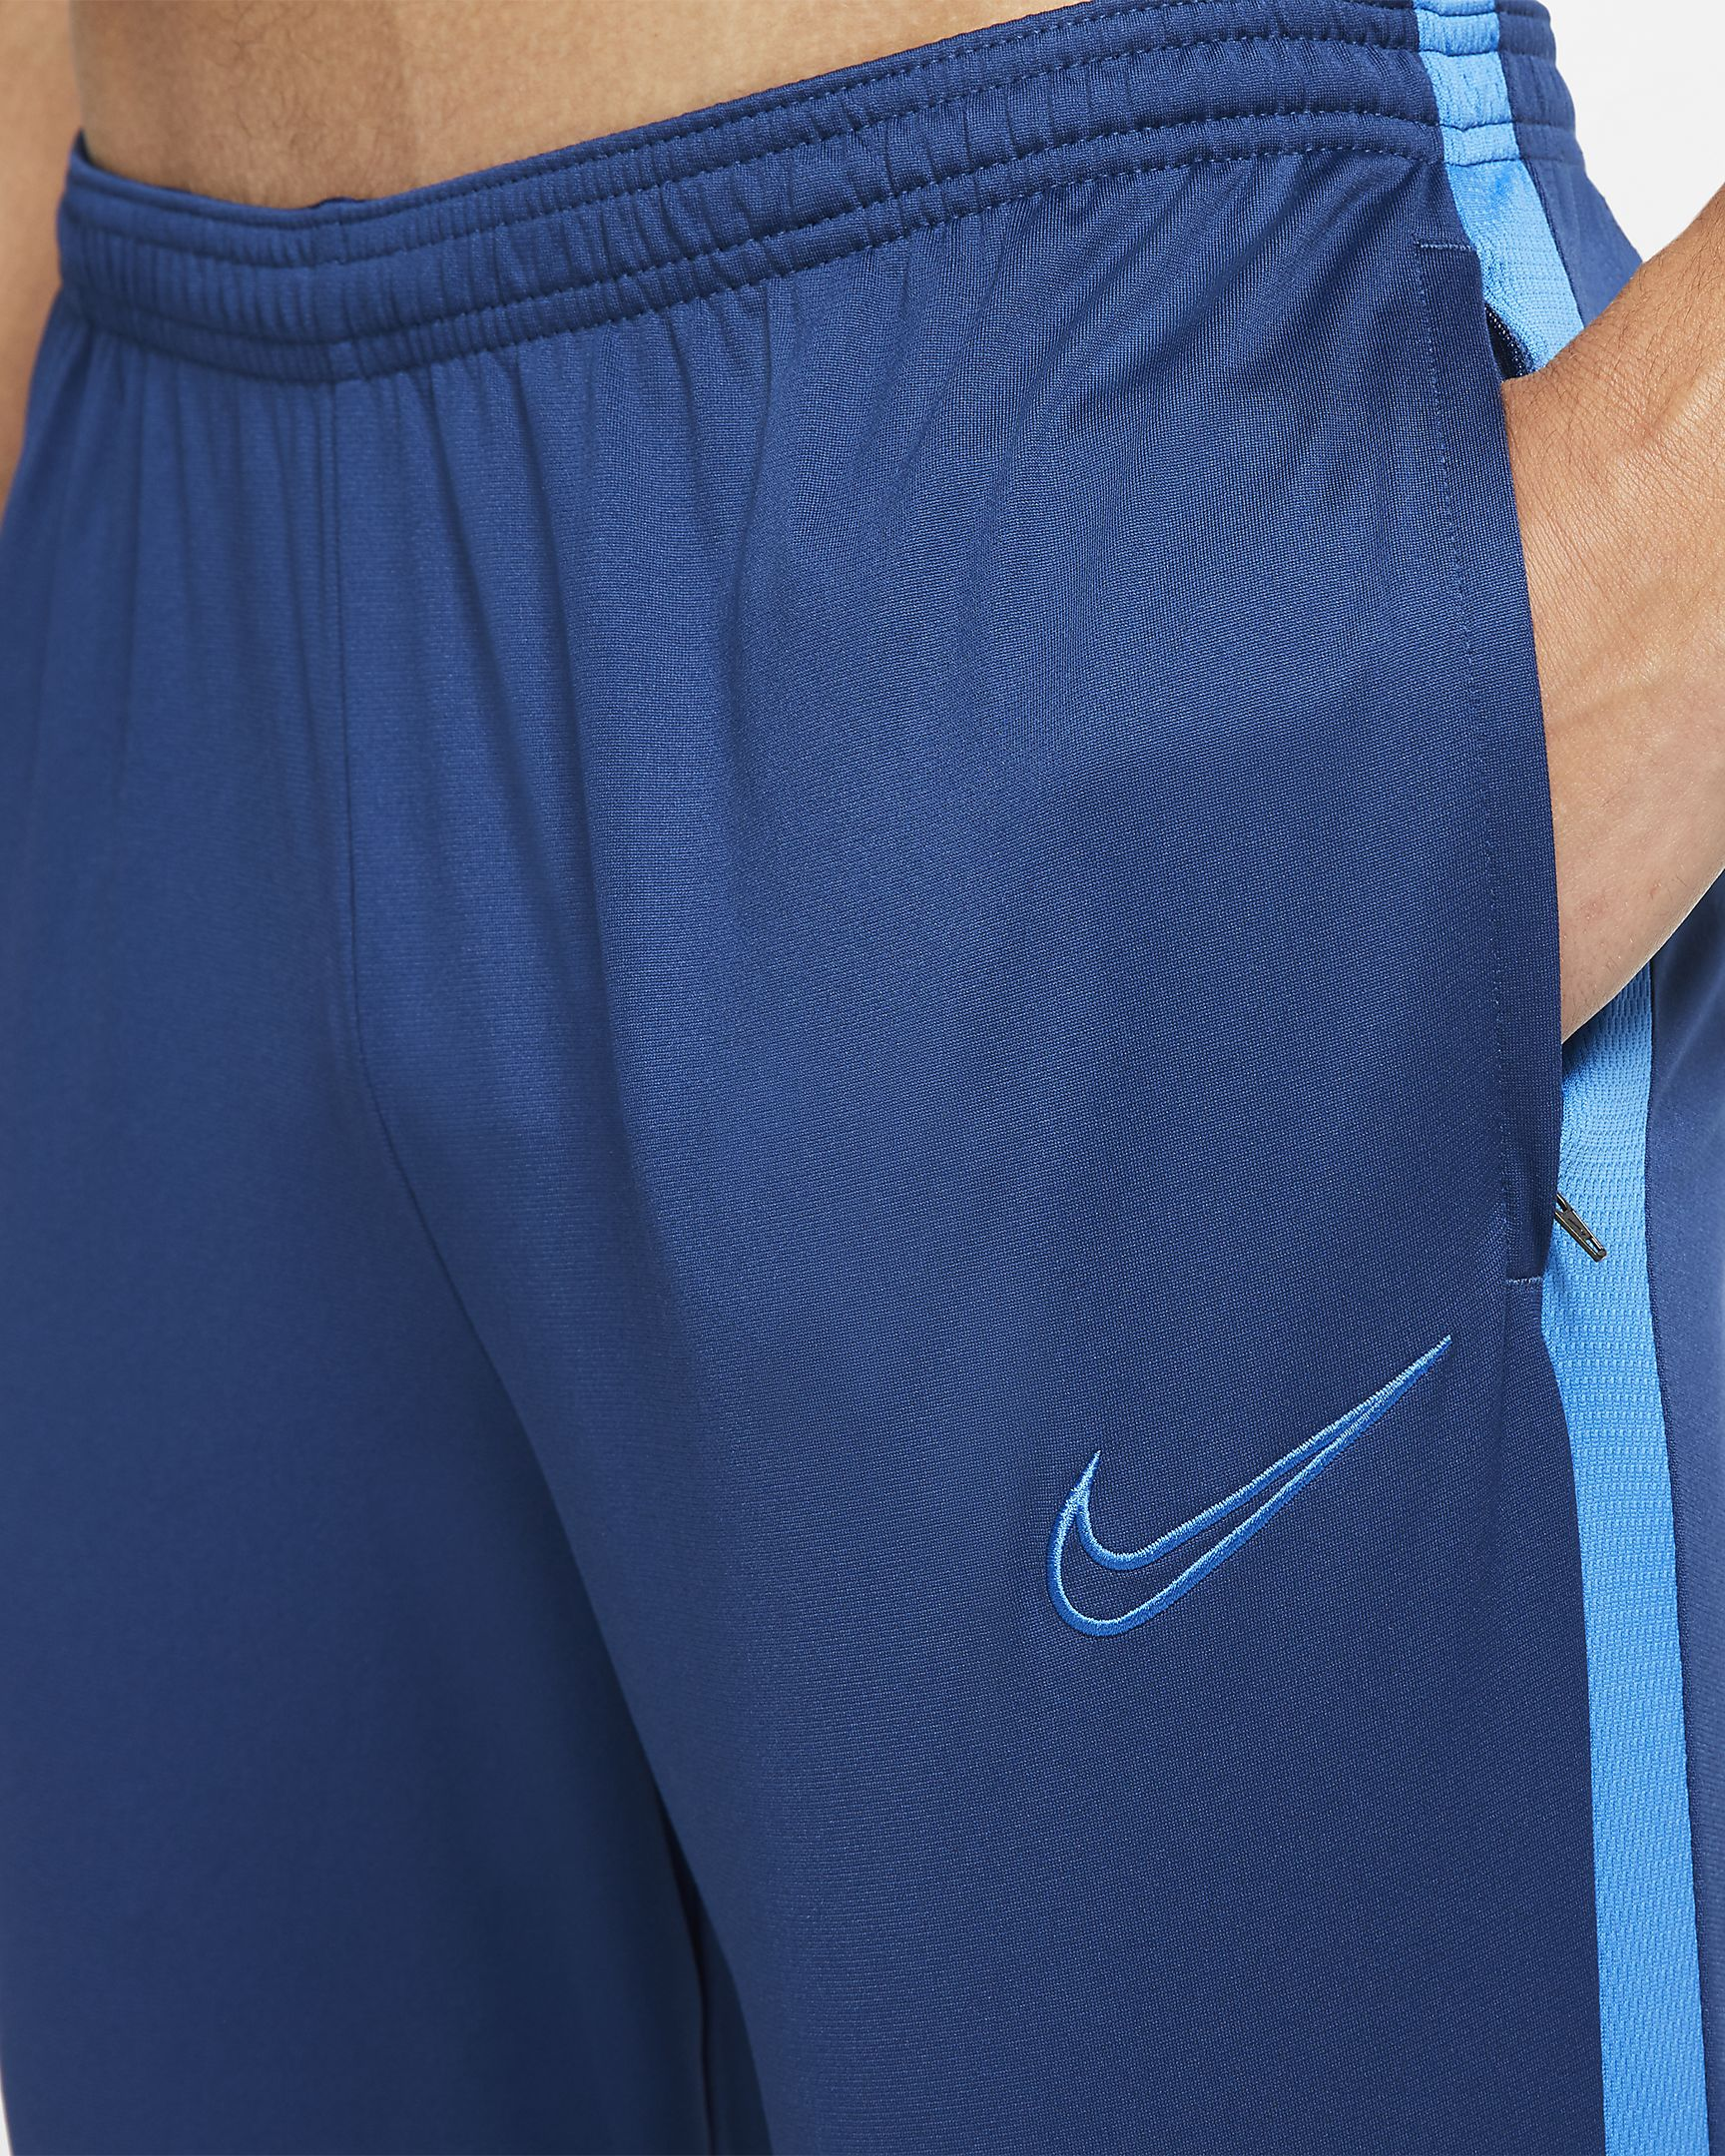 Men's Nike Academy Training Pants.     AJ9729